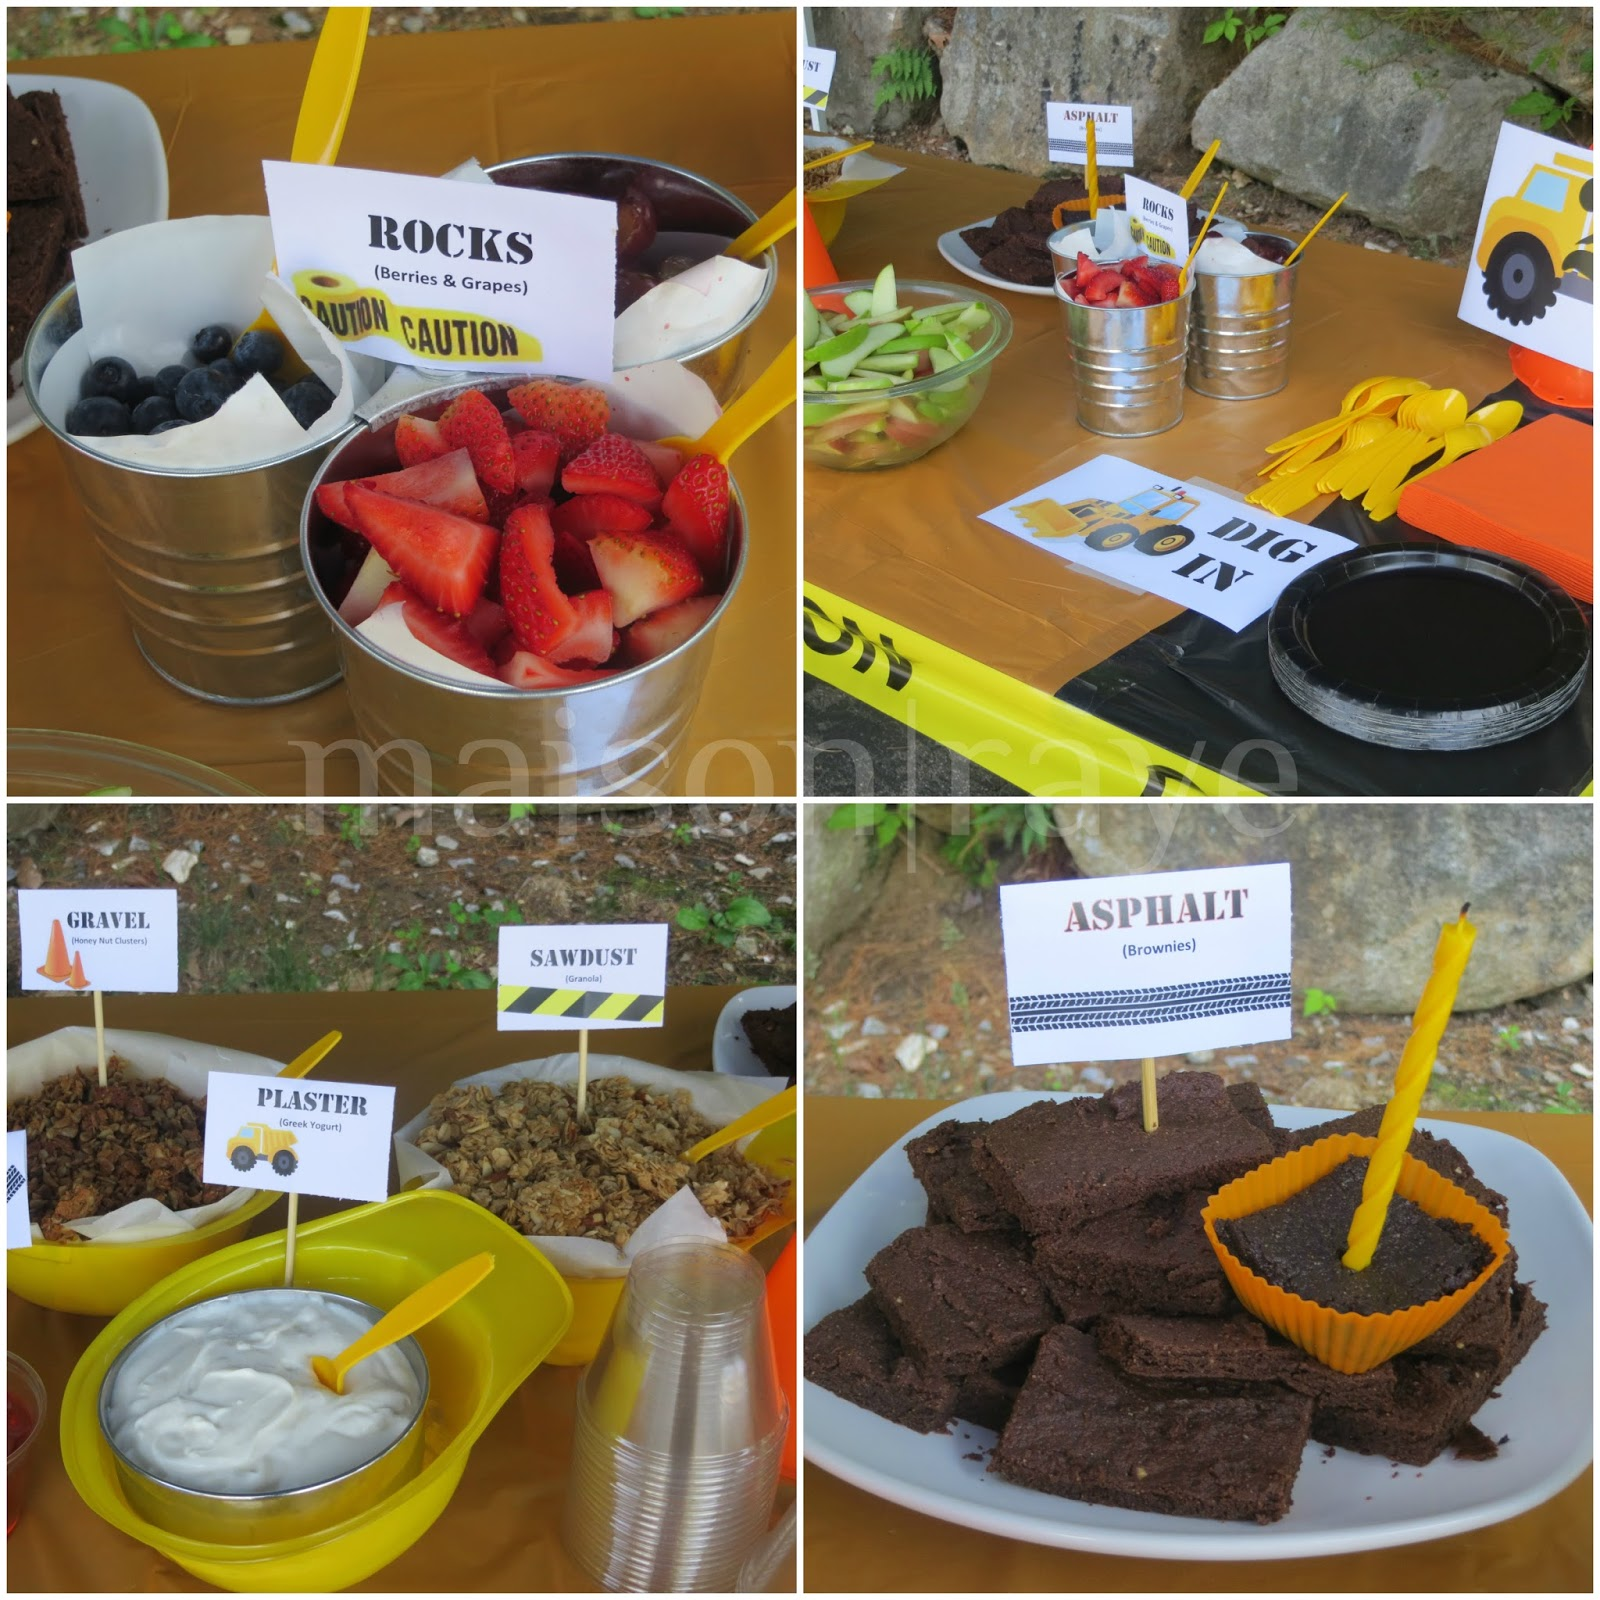 Construction Birthday Party Food Ideas: Raye: Ry Guy's Construction Theme 2nd Birthday Party